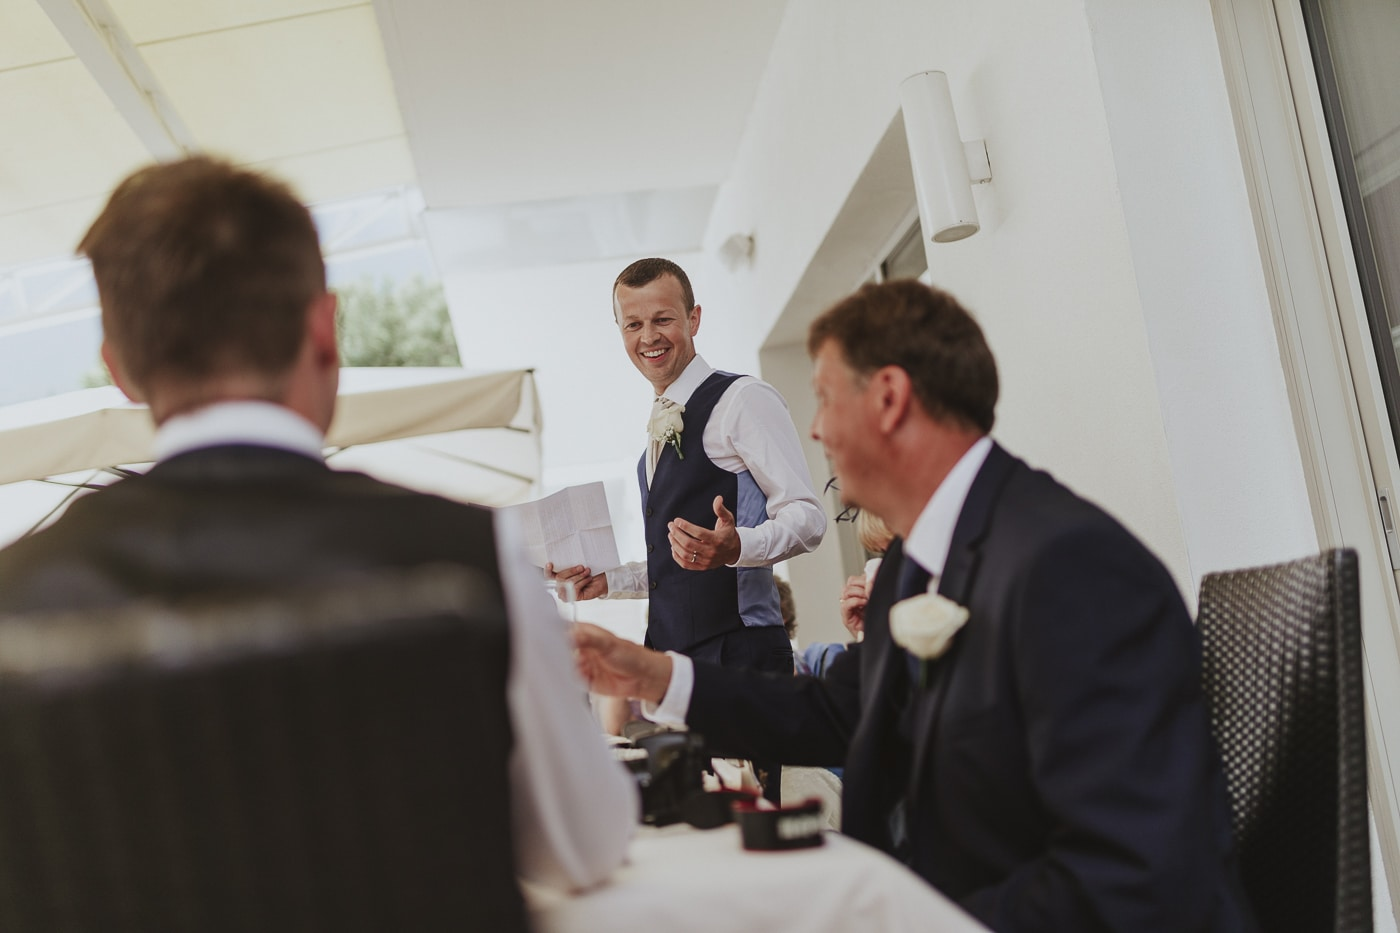 Three suited men during speeches smiling and gesturing by Joshua Wyborn